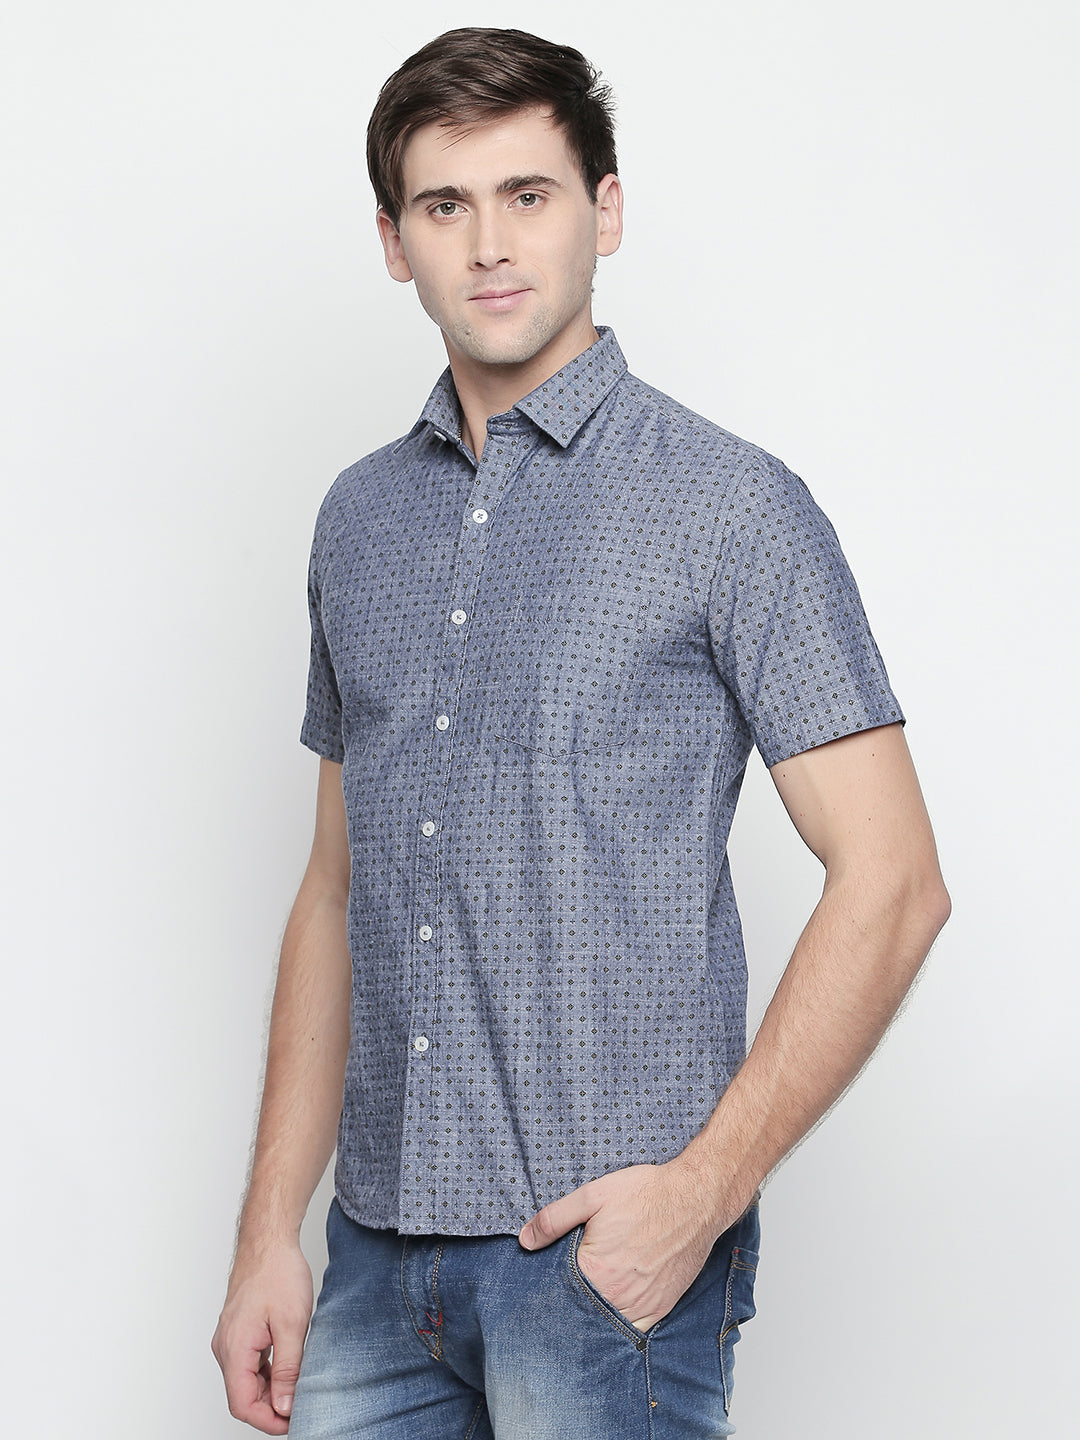 ZIDO Slim Fit Cotton Printed Shirt for Men's PN1439